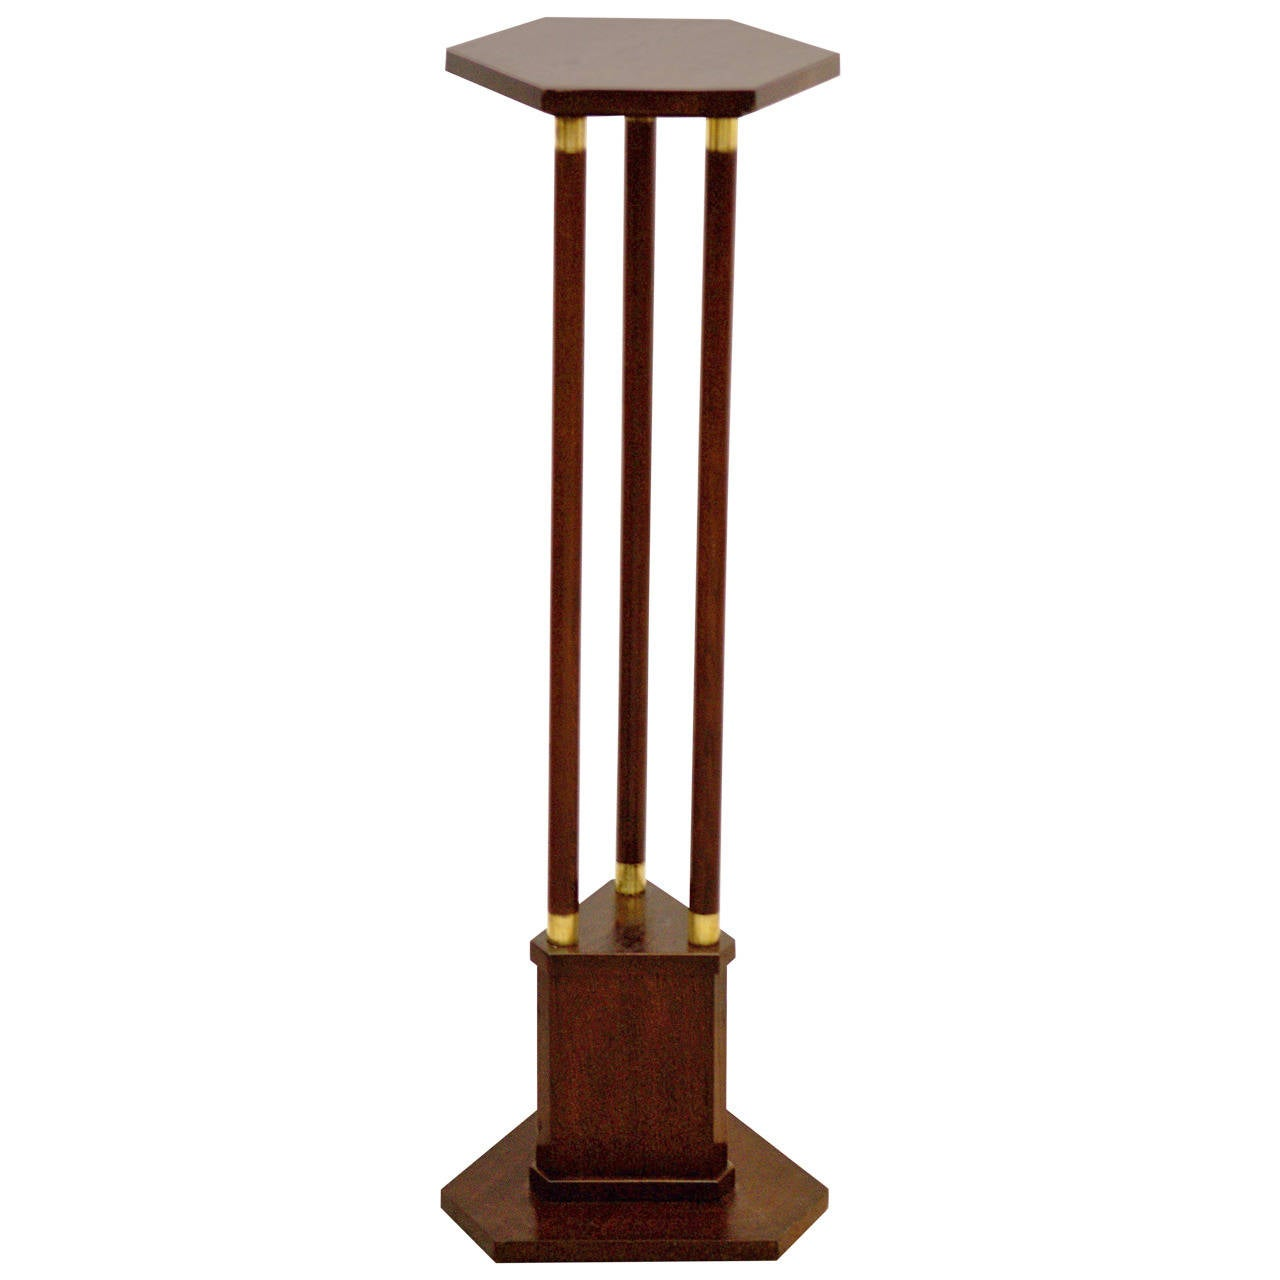 Vienna Secession Pedestal Or Flower Stand At 1stdibs